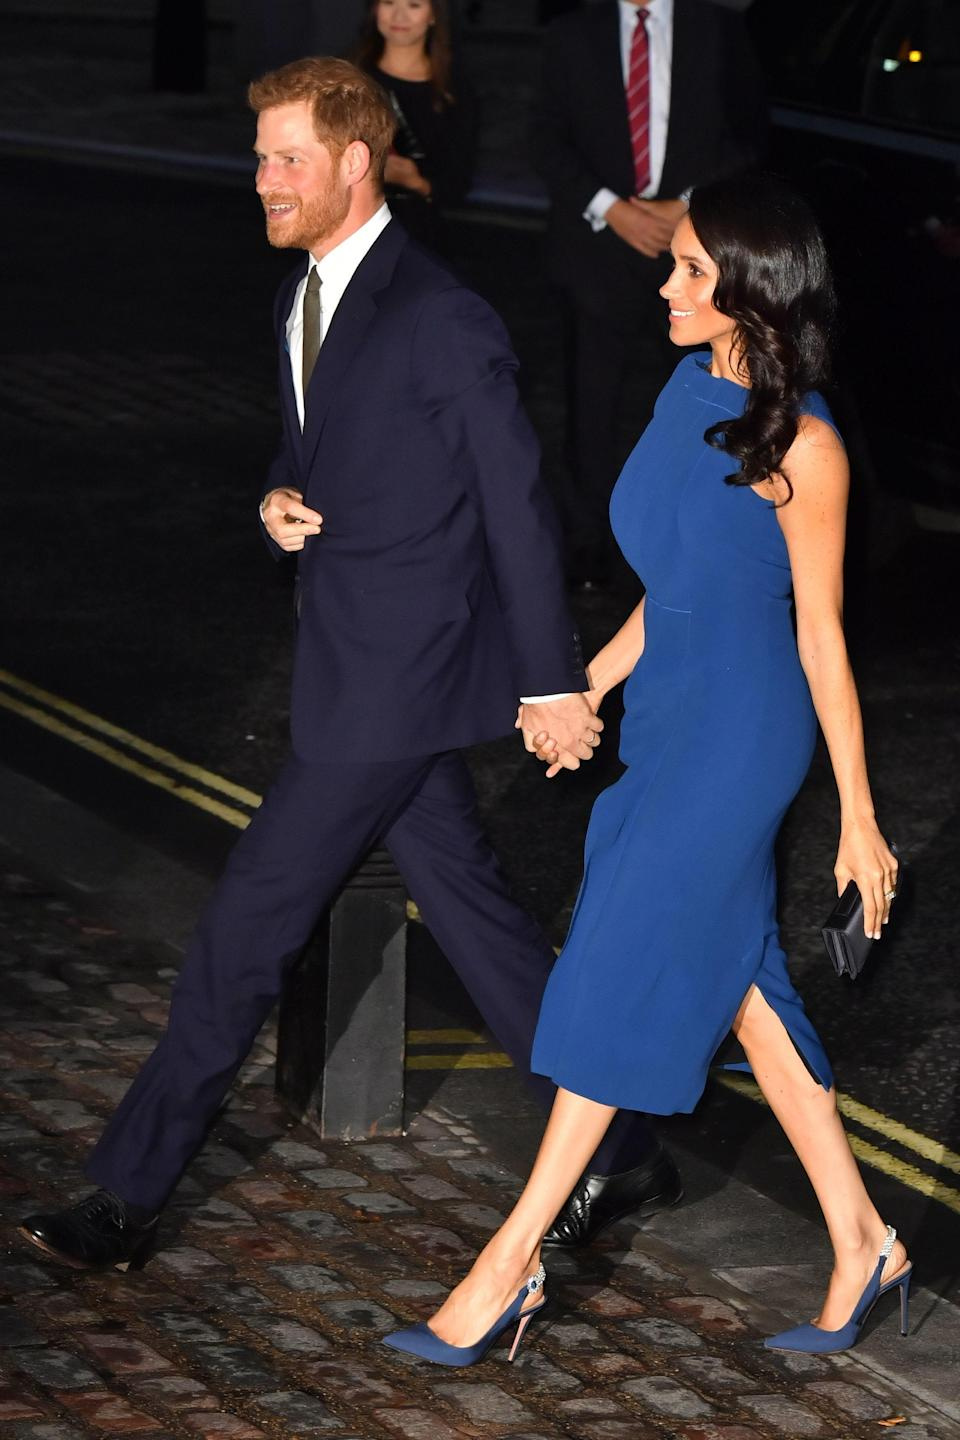 The Duchess of Sussex opted for a royal blue shift dress by Jason Wu for the prestigious evening of music [Photo: PA]